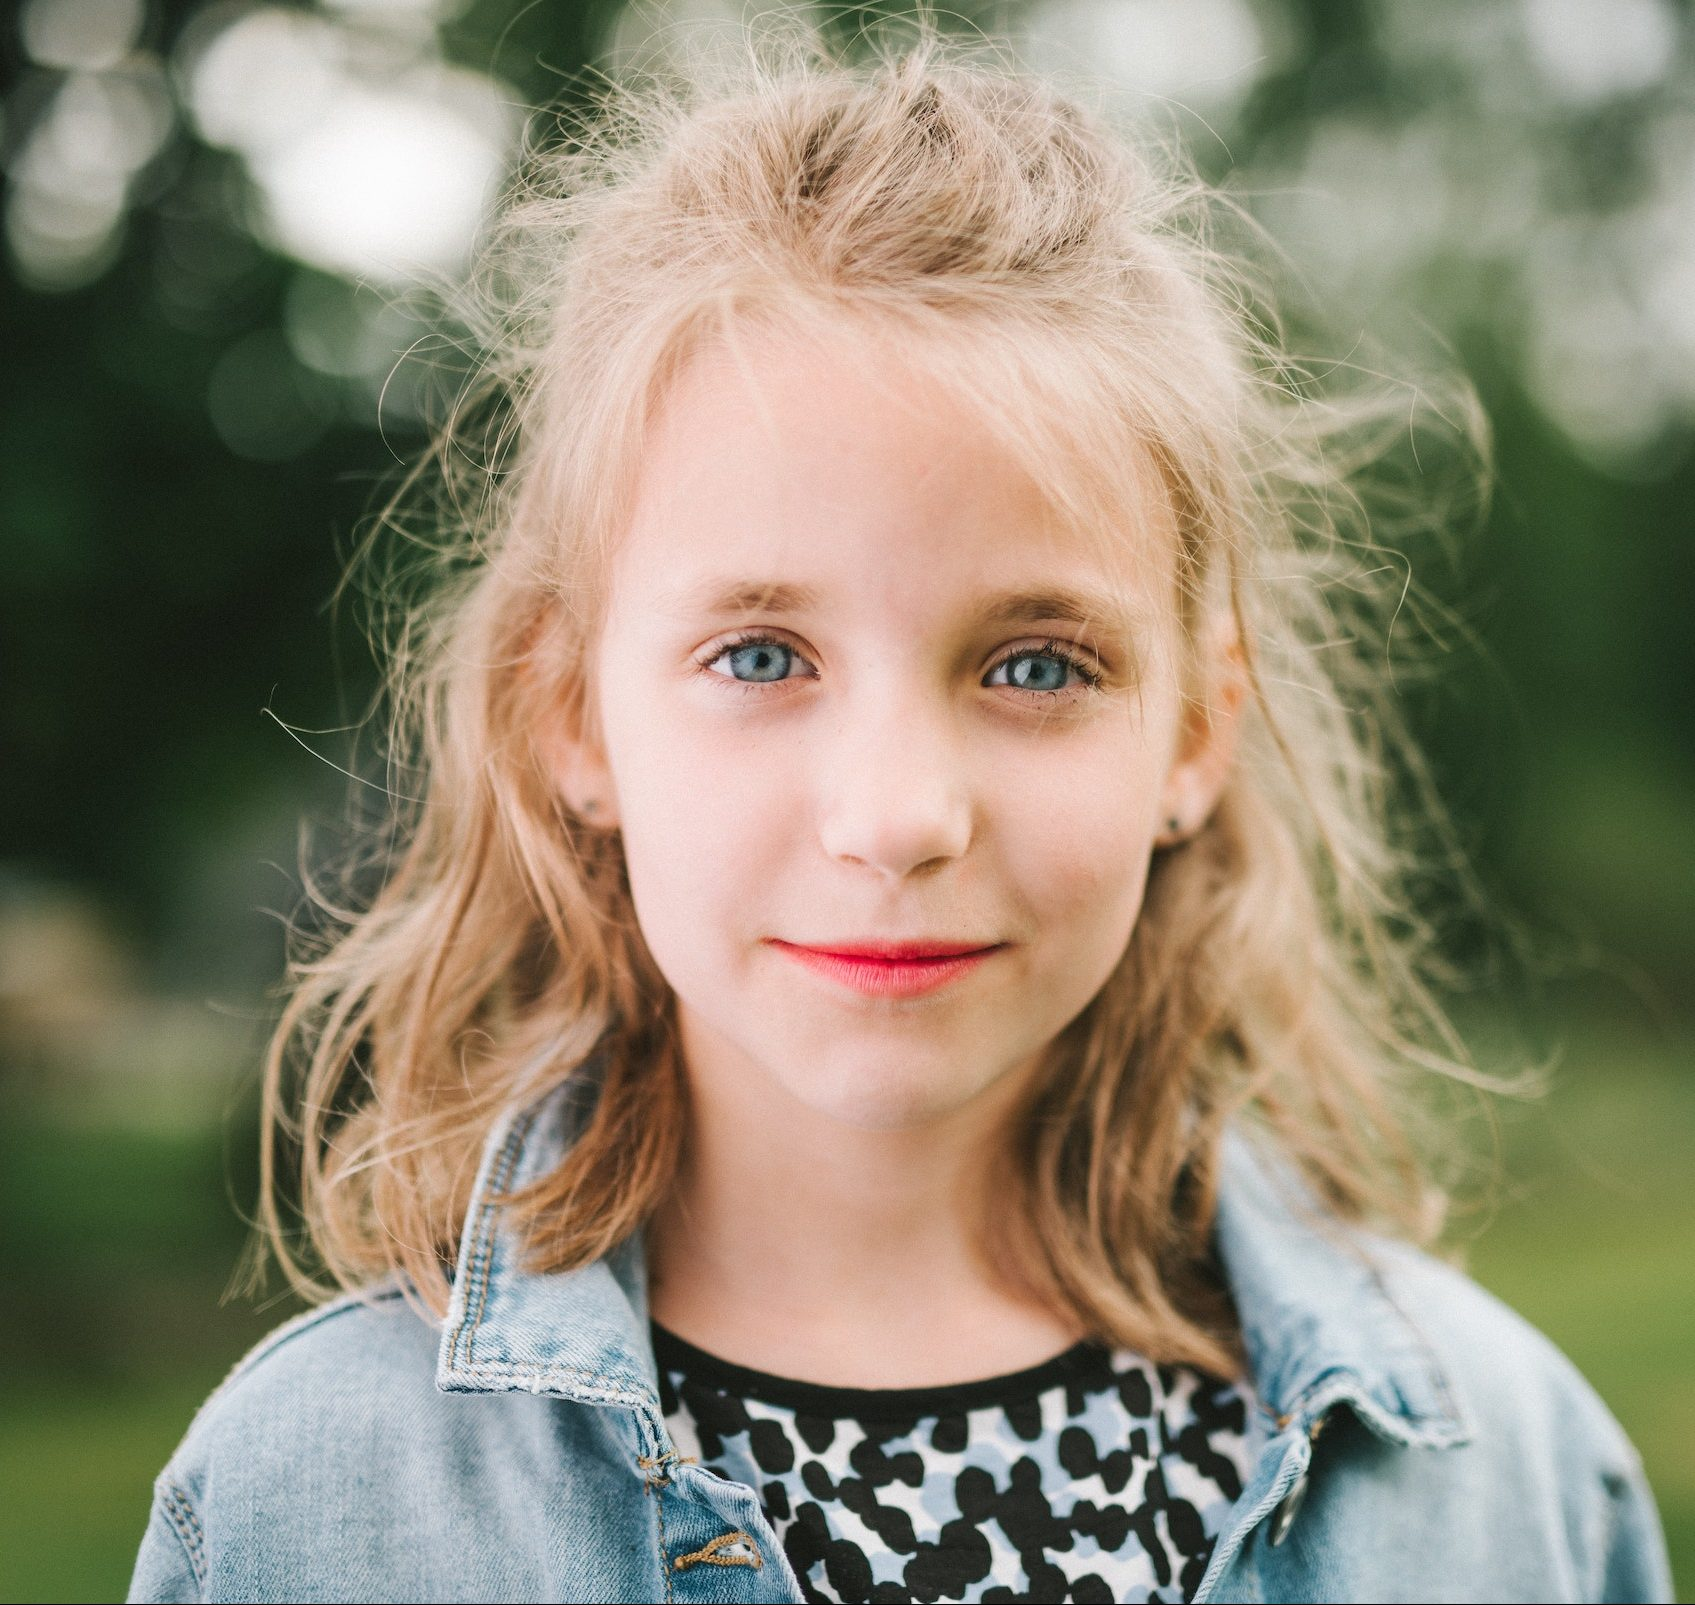 young girl blond hair smiling